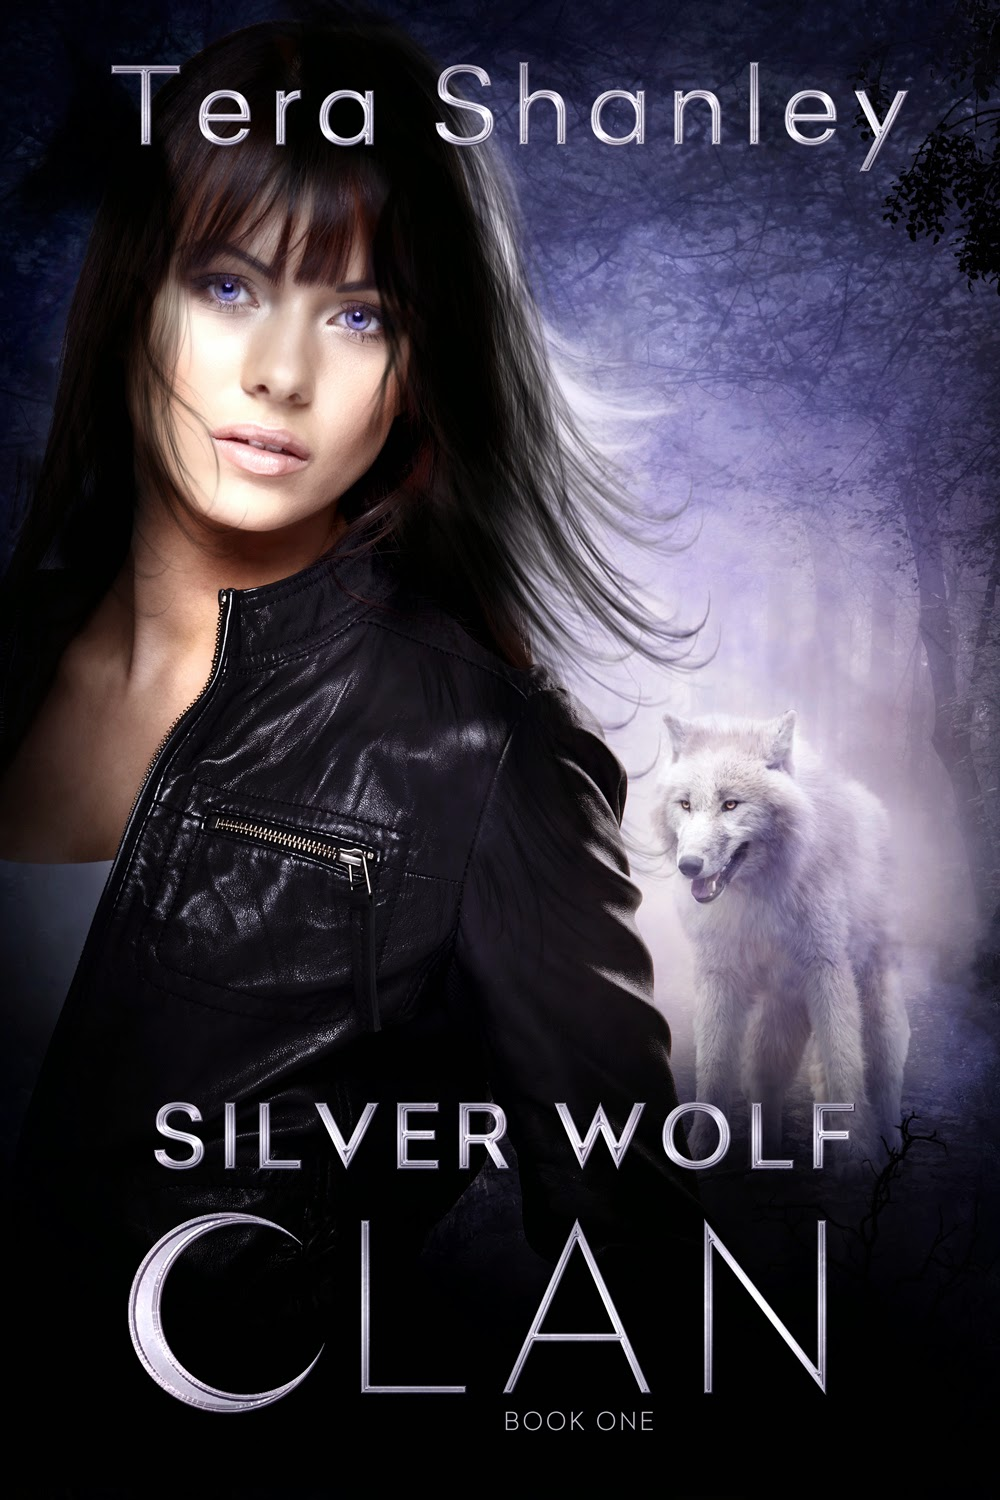 Book excerpt for paranormal romance Silver Wolf Clan by Tera Shanley